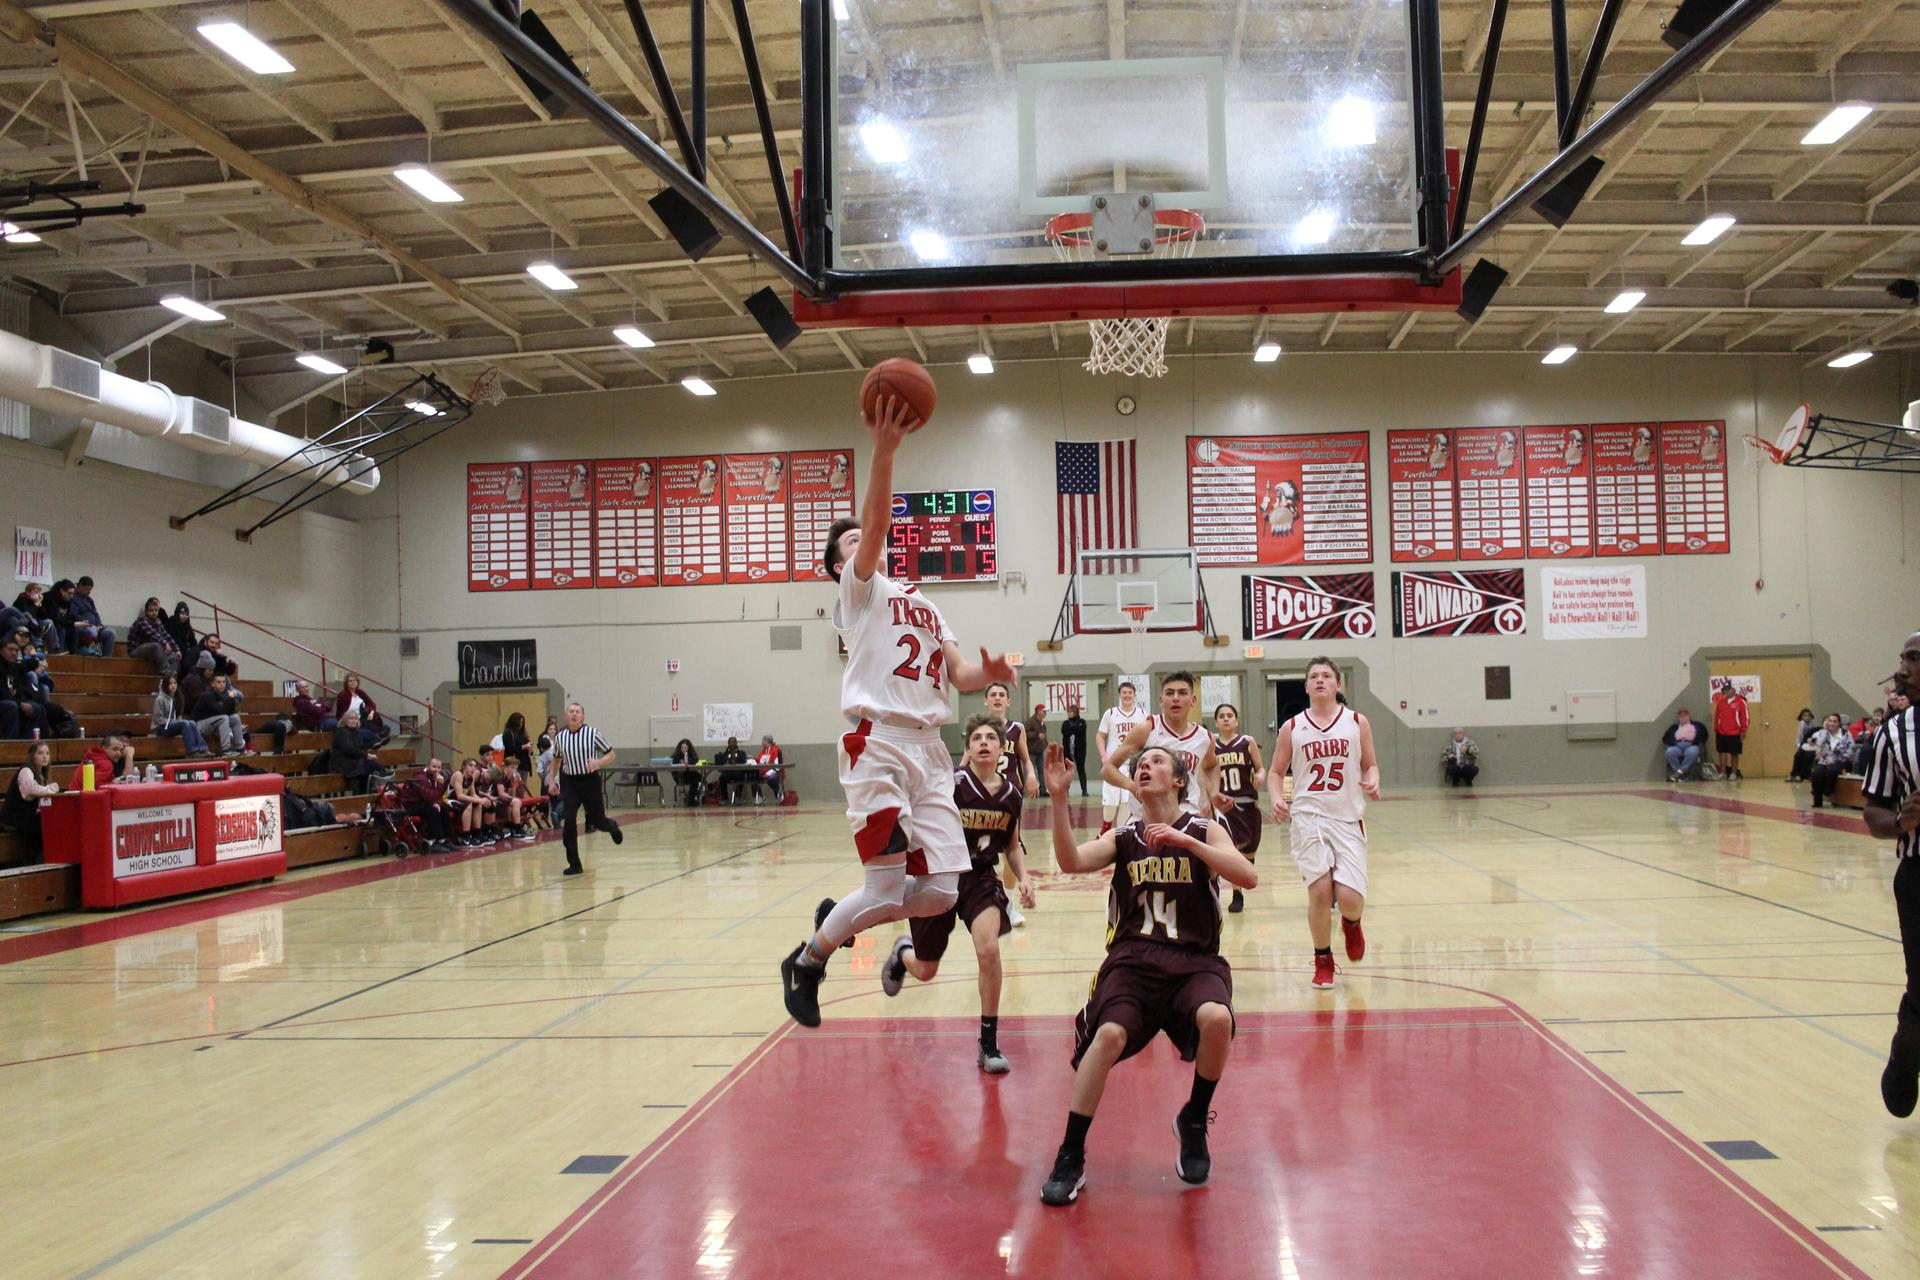 JV Boys playing basketball vs Sierra